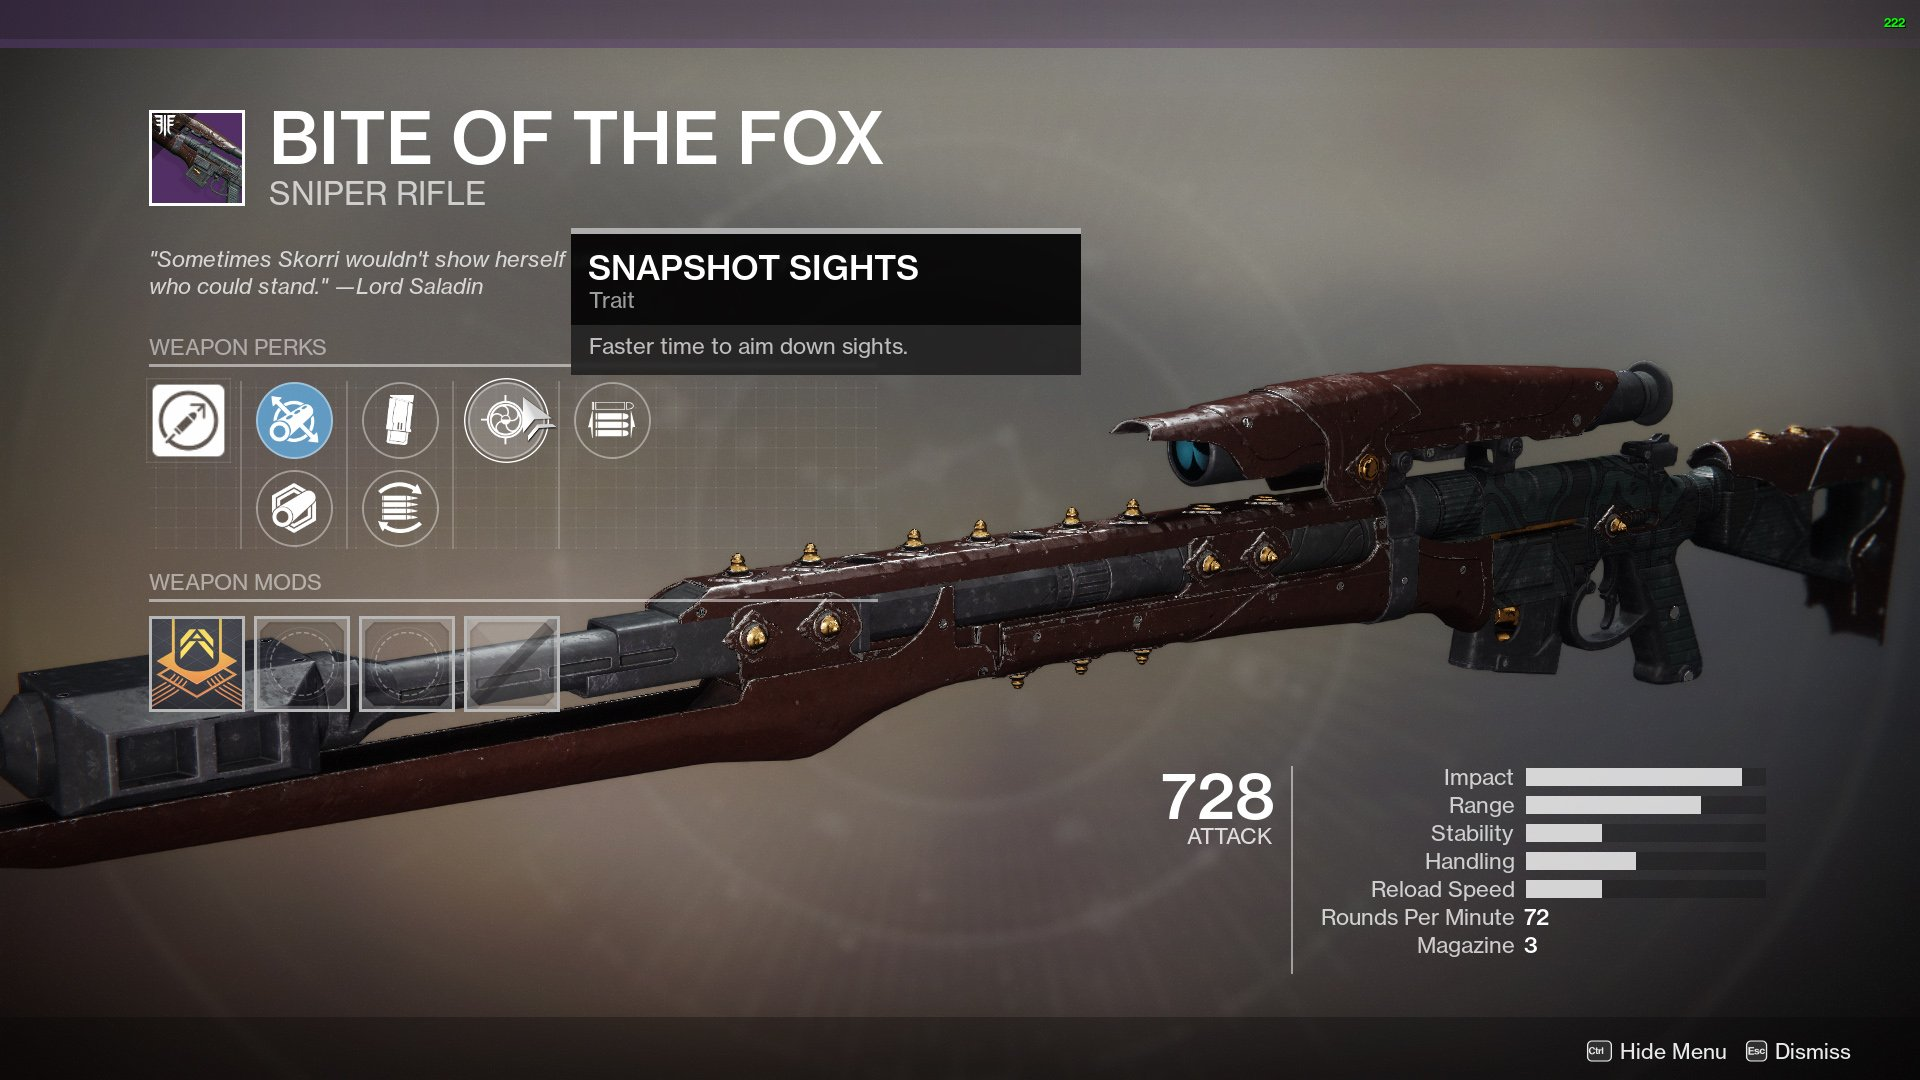 Destiny 2 Bite of the Fox